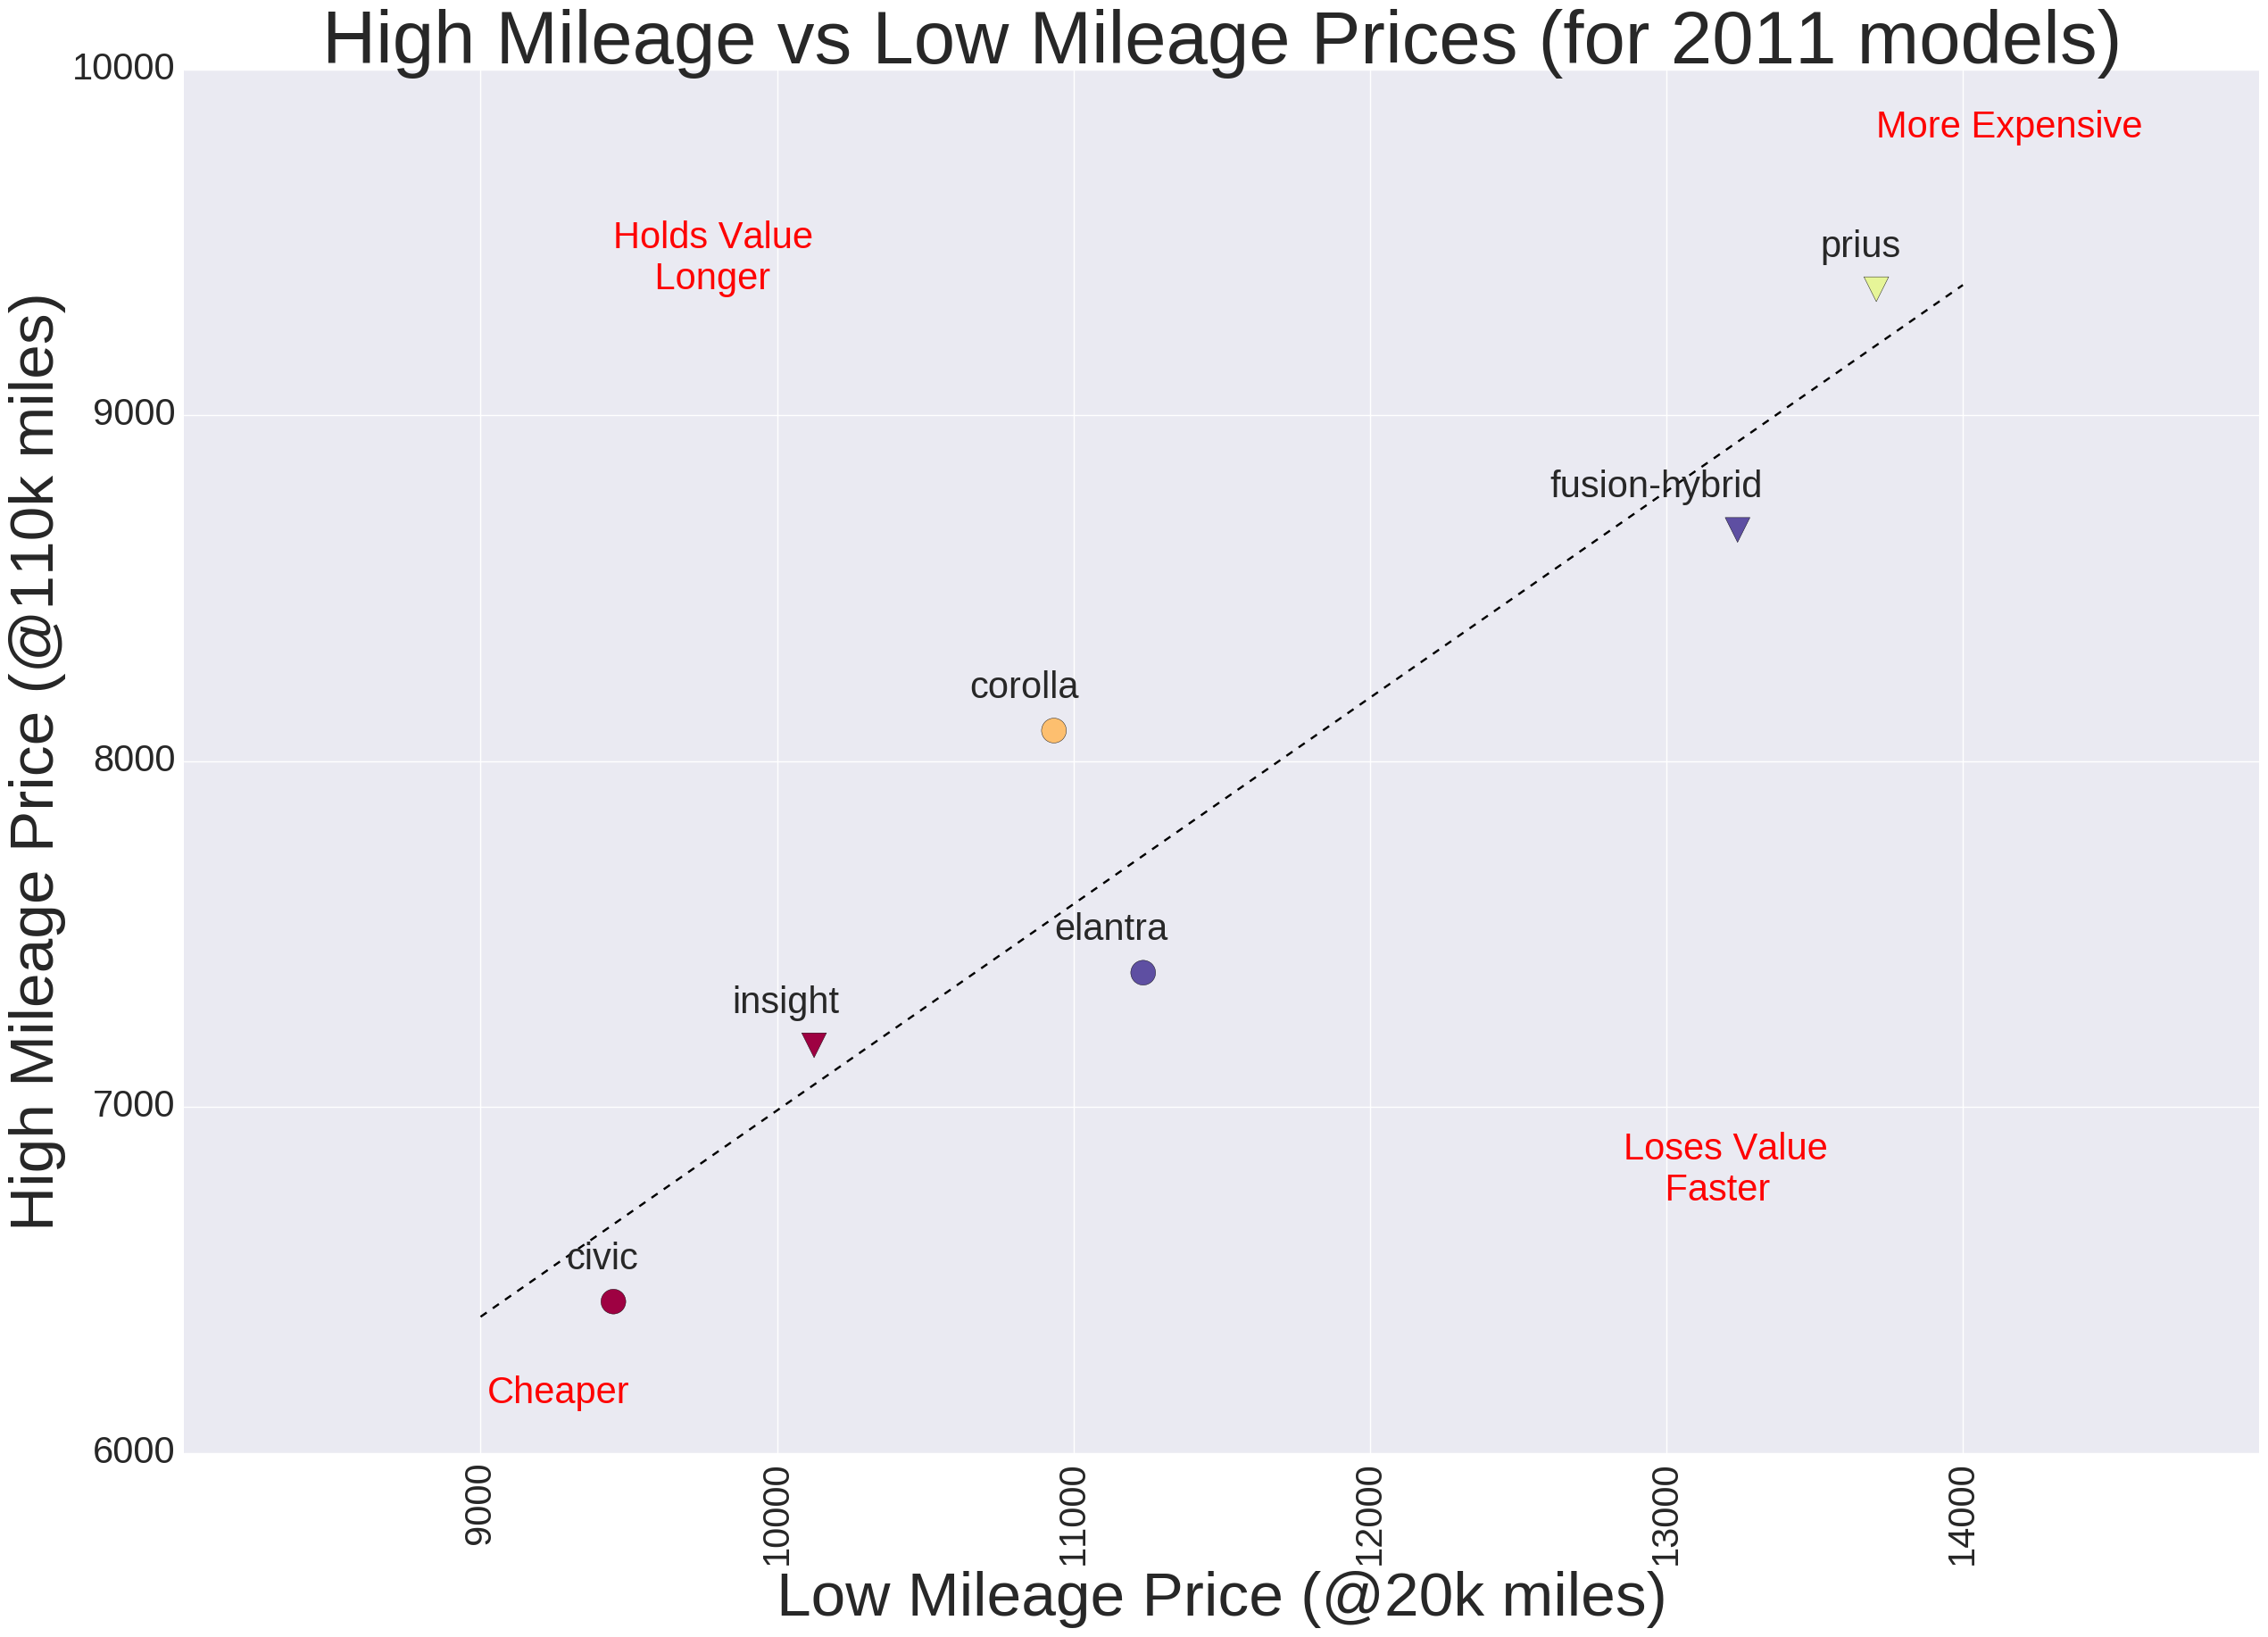 what mileage of car gives the best value